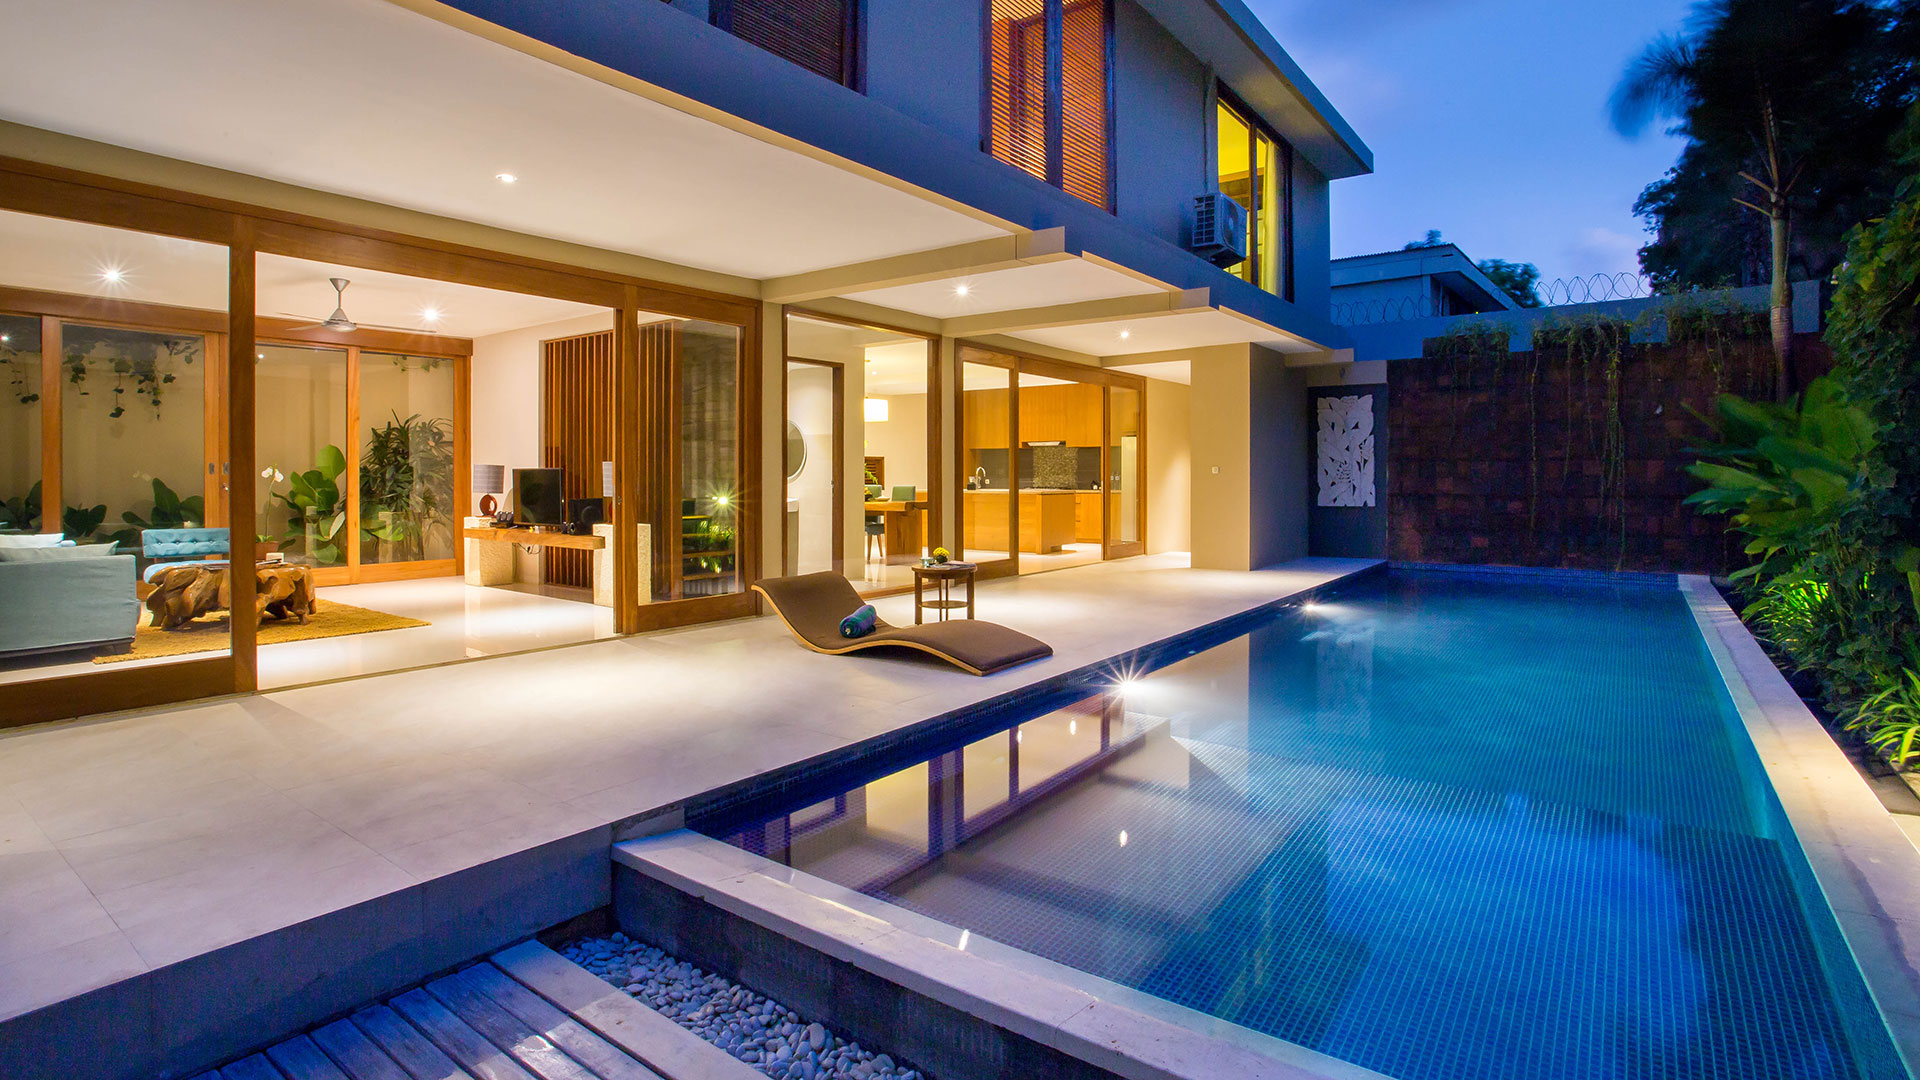 Renovated villas complex with minimalist style both interior and exterior located around Umalas, village of Bule in Bali...